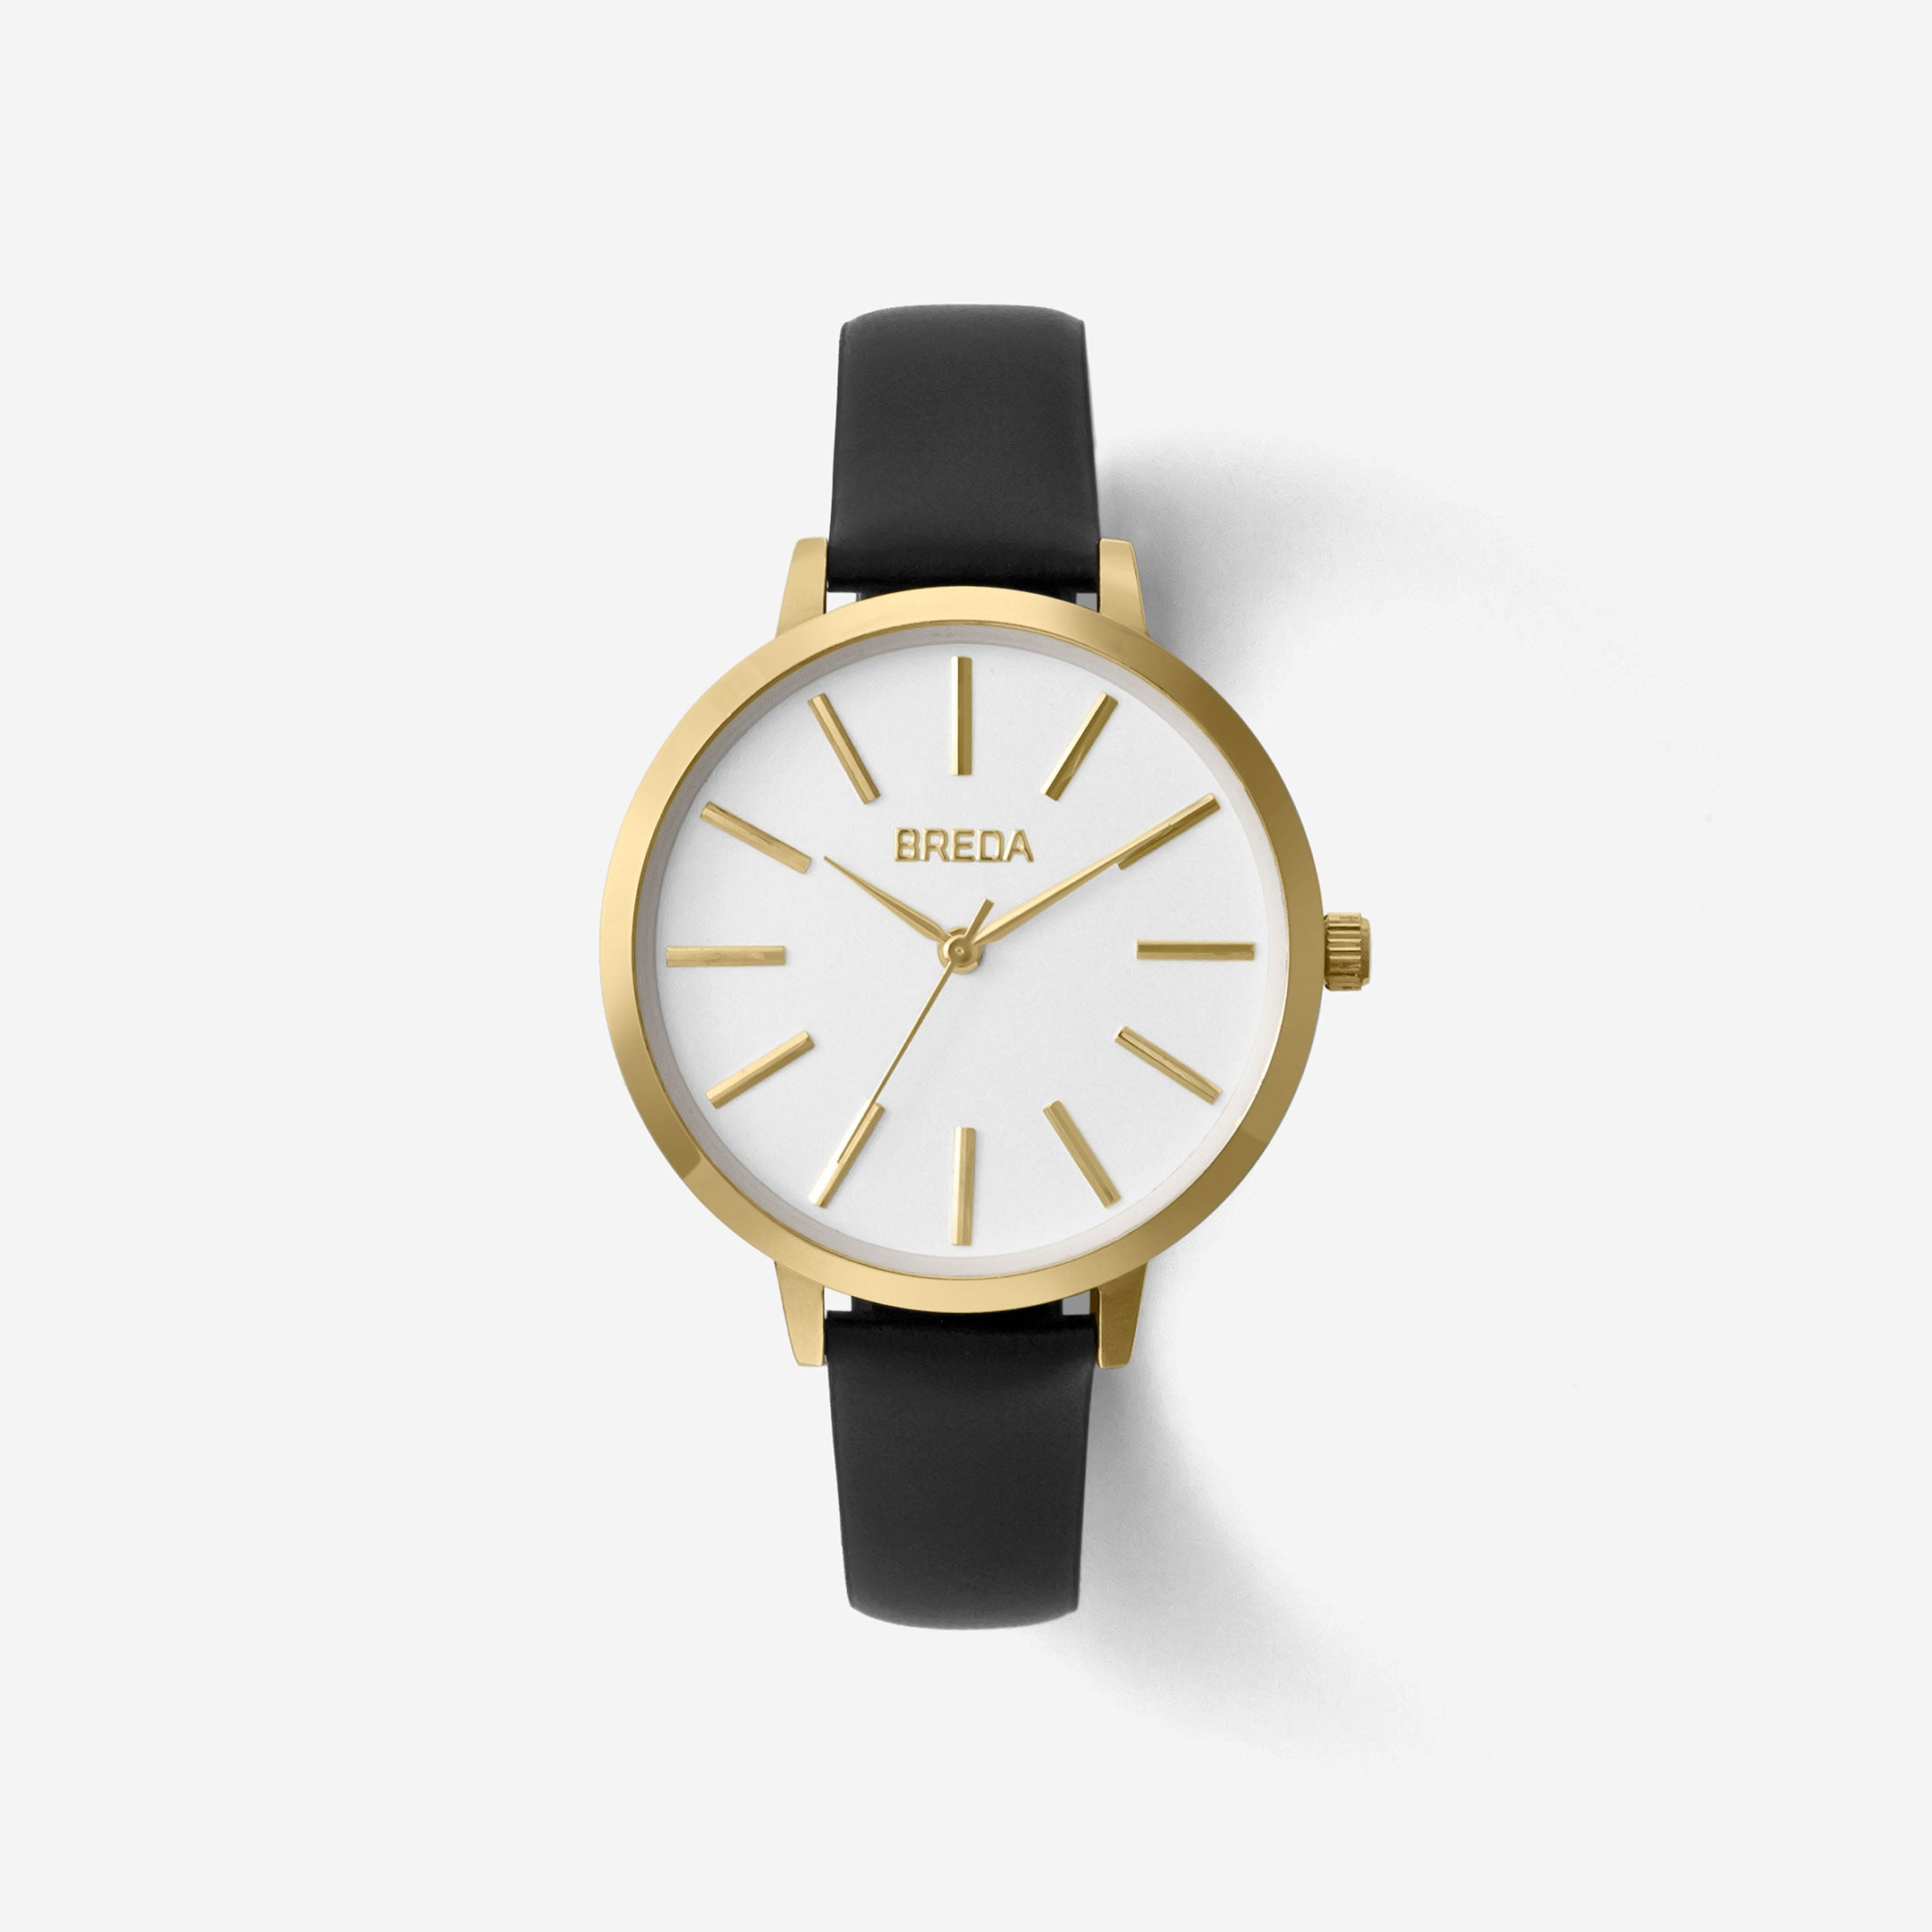 //cdn.shopify.com/s/files/1/0879/6650/products/breda-joule-1722a-gold-black-watch-front_1024x1024.jpg?v=1522790020